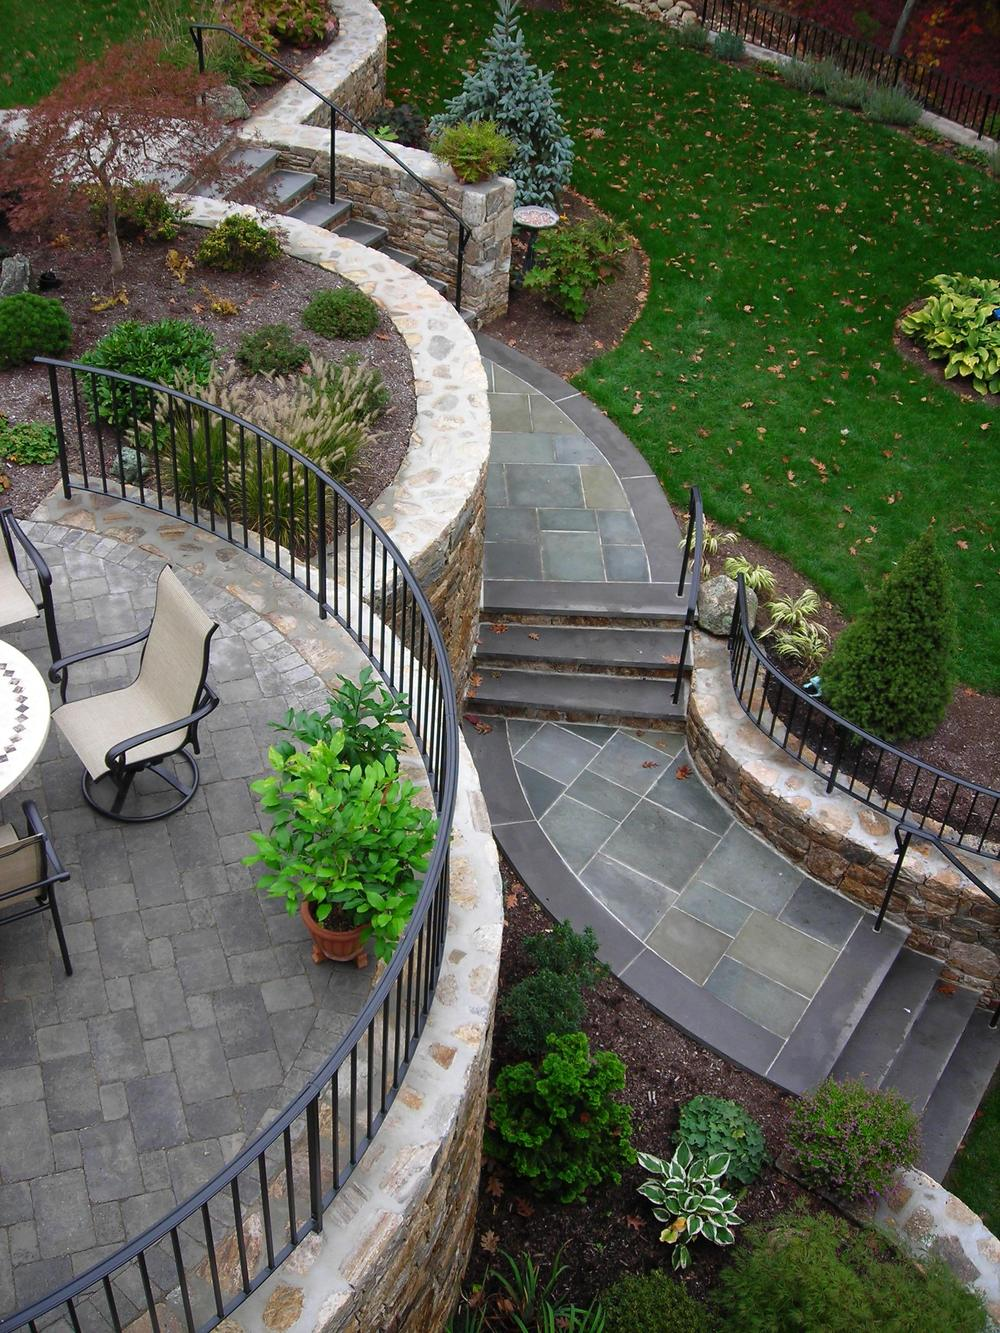 Top View of Custom Railings